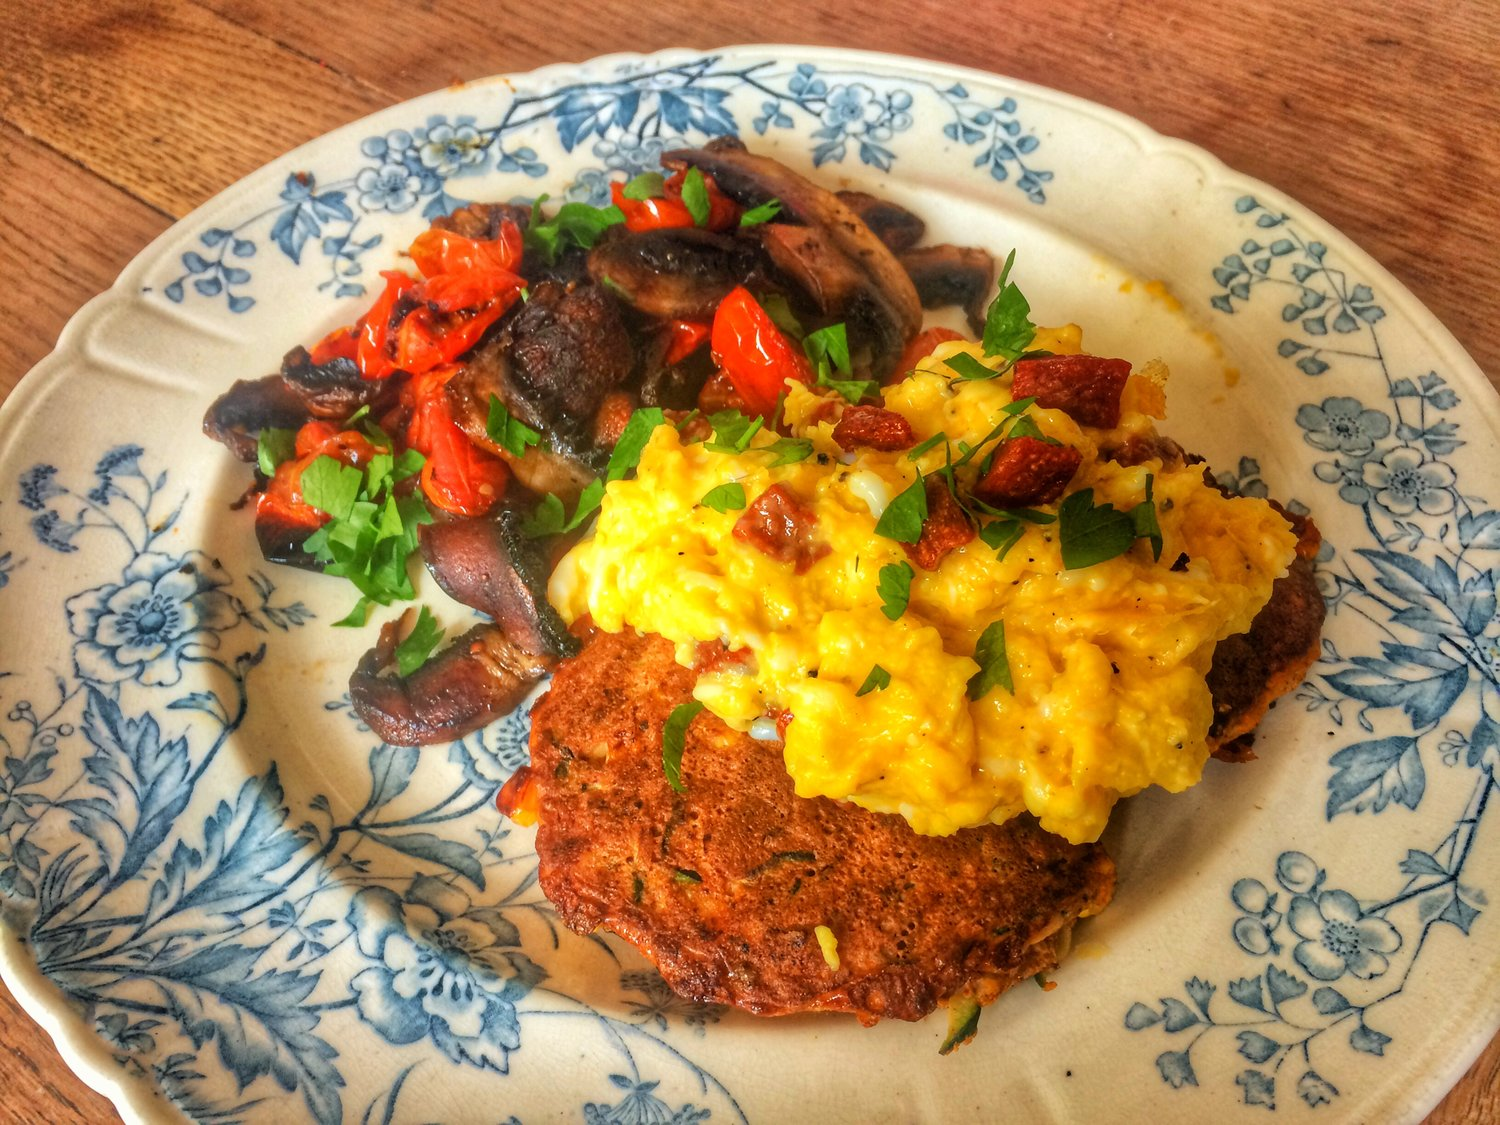 Courgette & corn fritters with chorizo scrambled eggs and grilled mushrooms and tomatoes- completely grain free and filling.